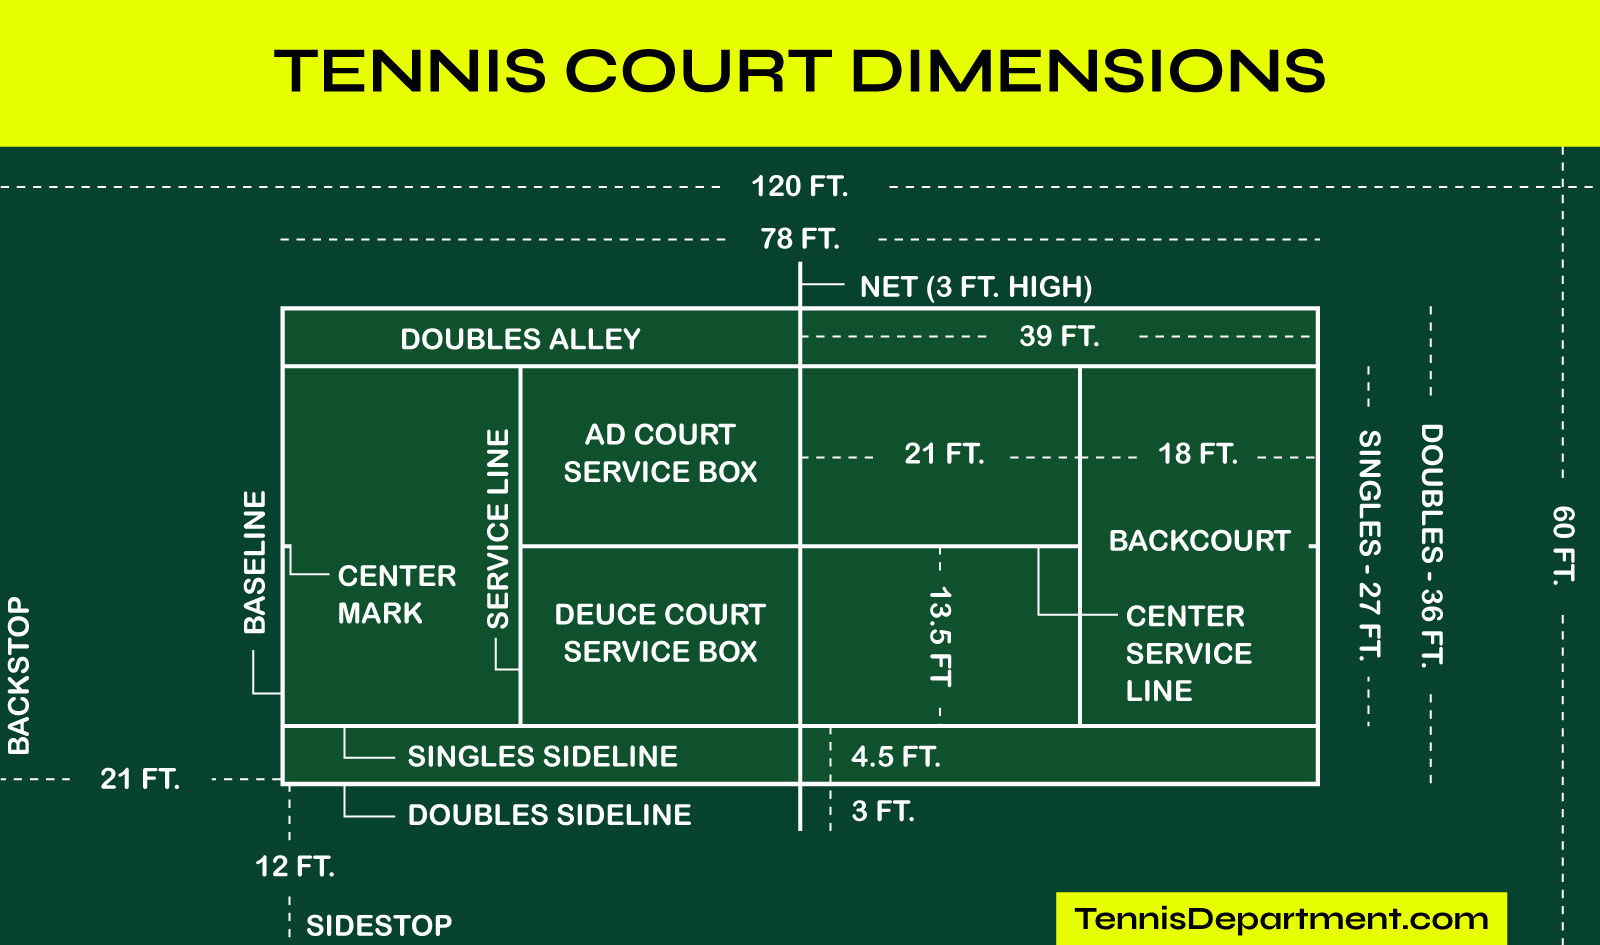 Tennis Court Diagram with Dimensions